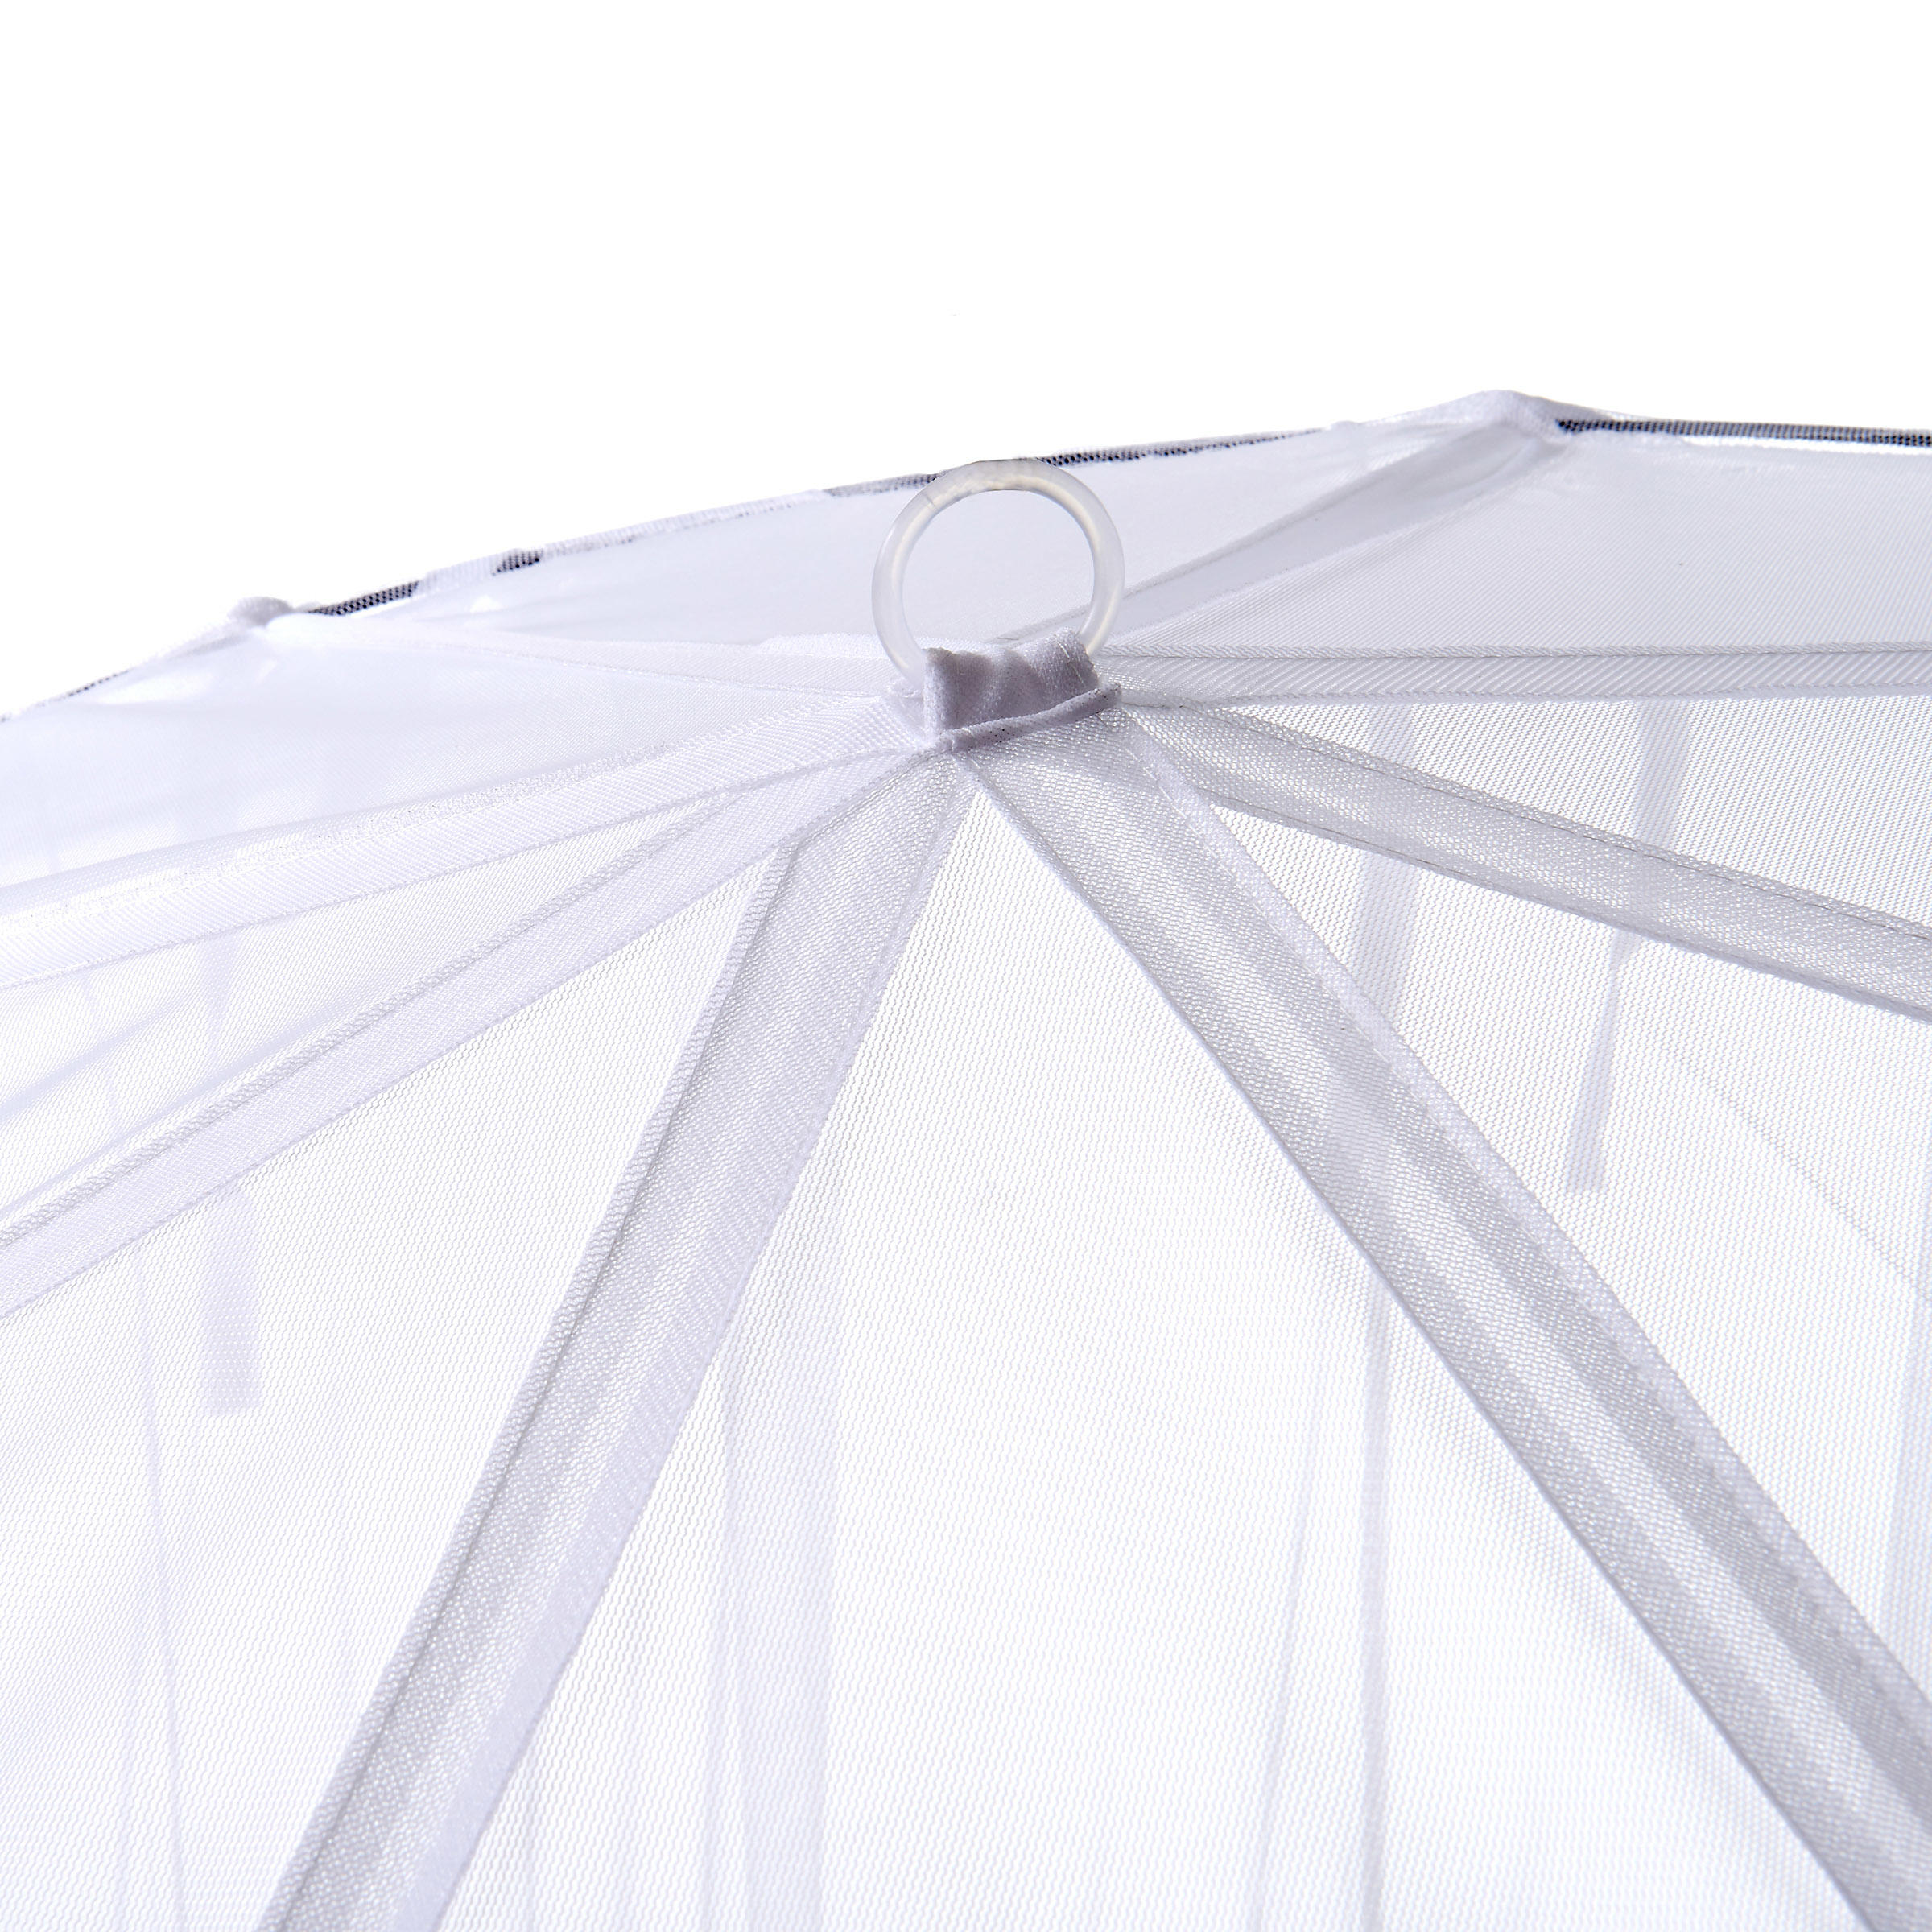 Mosquito Net for 2 People